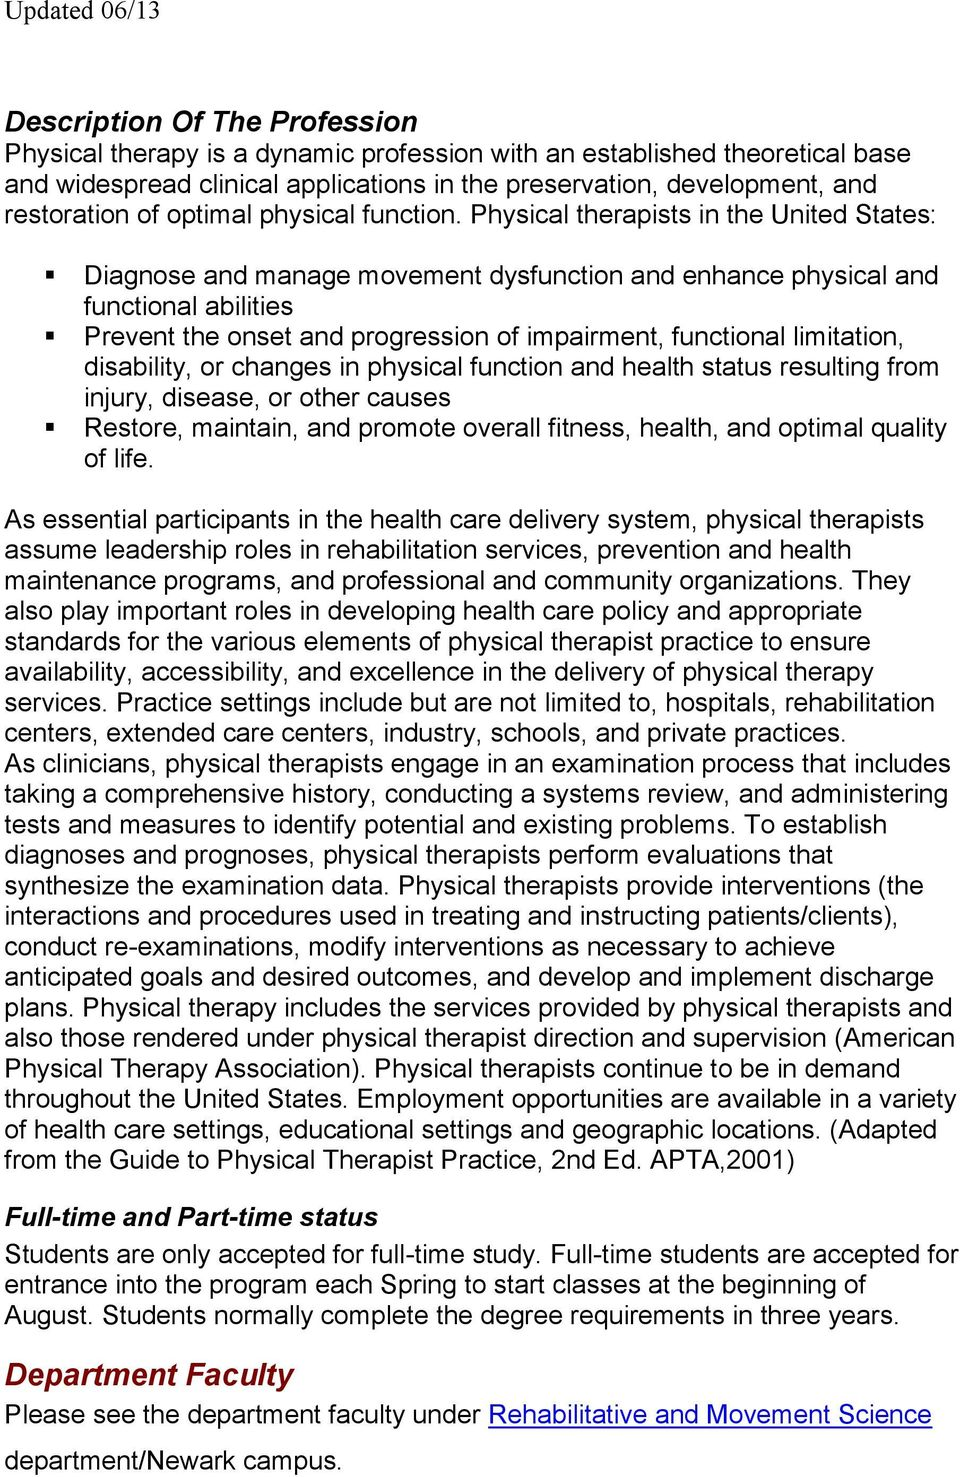 Physical therapists in the United States: Diagnose and manage movement dysfunction and enhance physical and functional abilities Prevent the onset and progression of impairment, functional